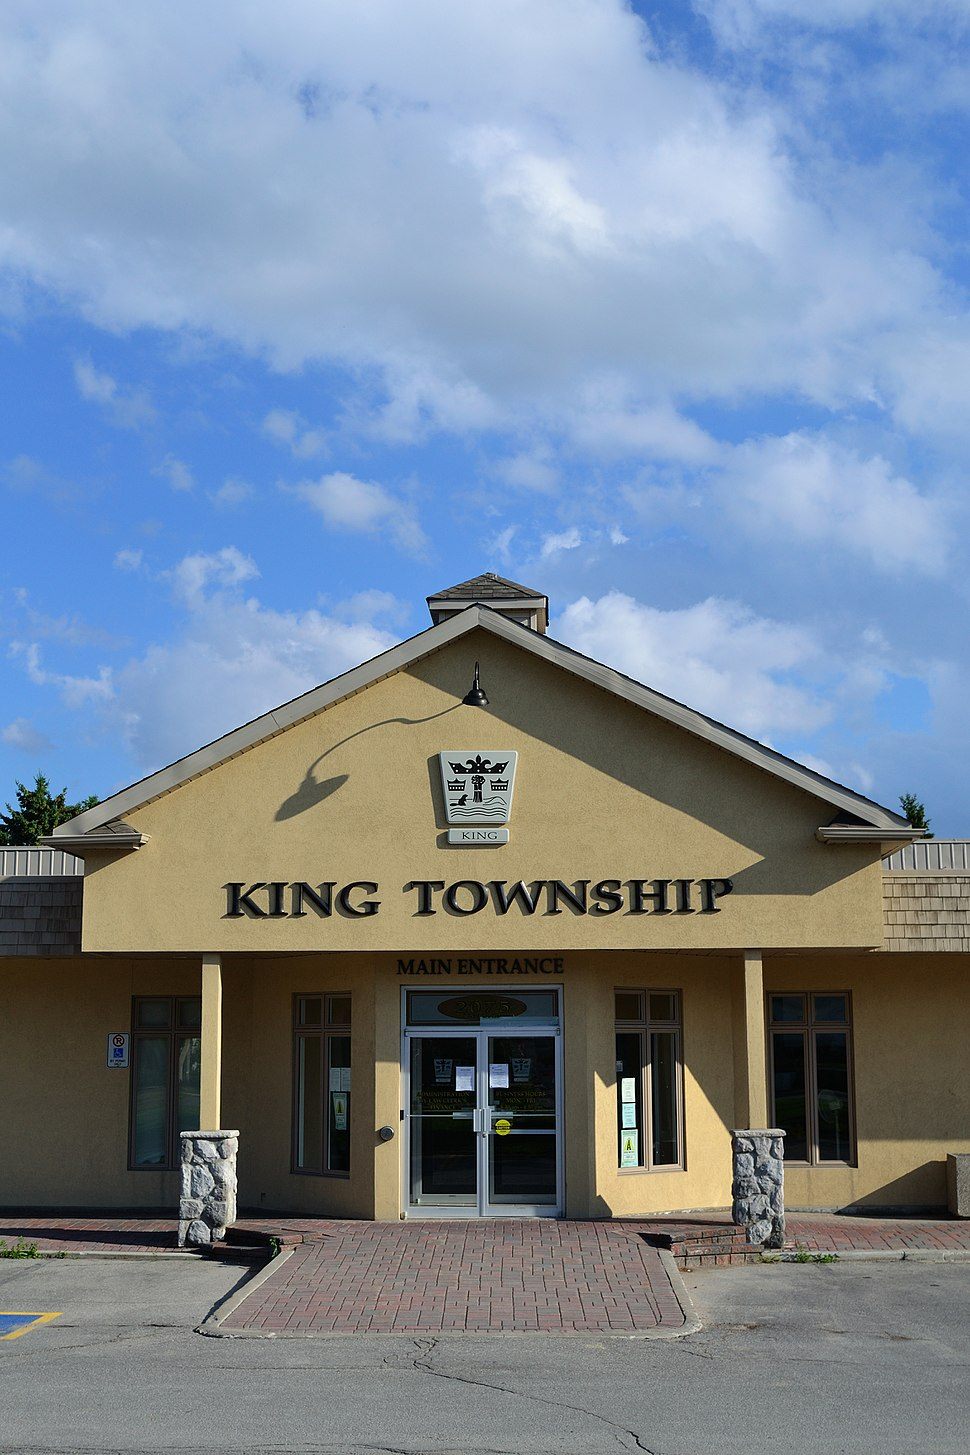 KingTownship